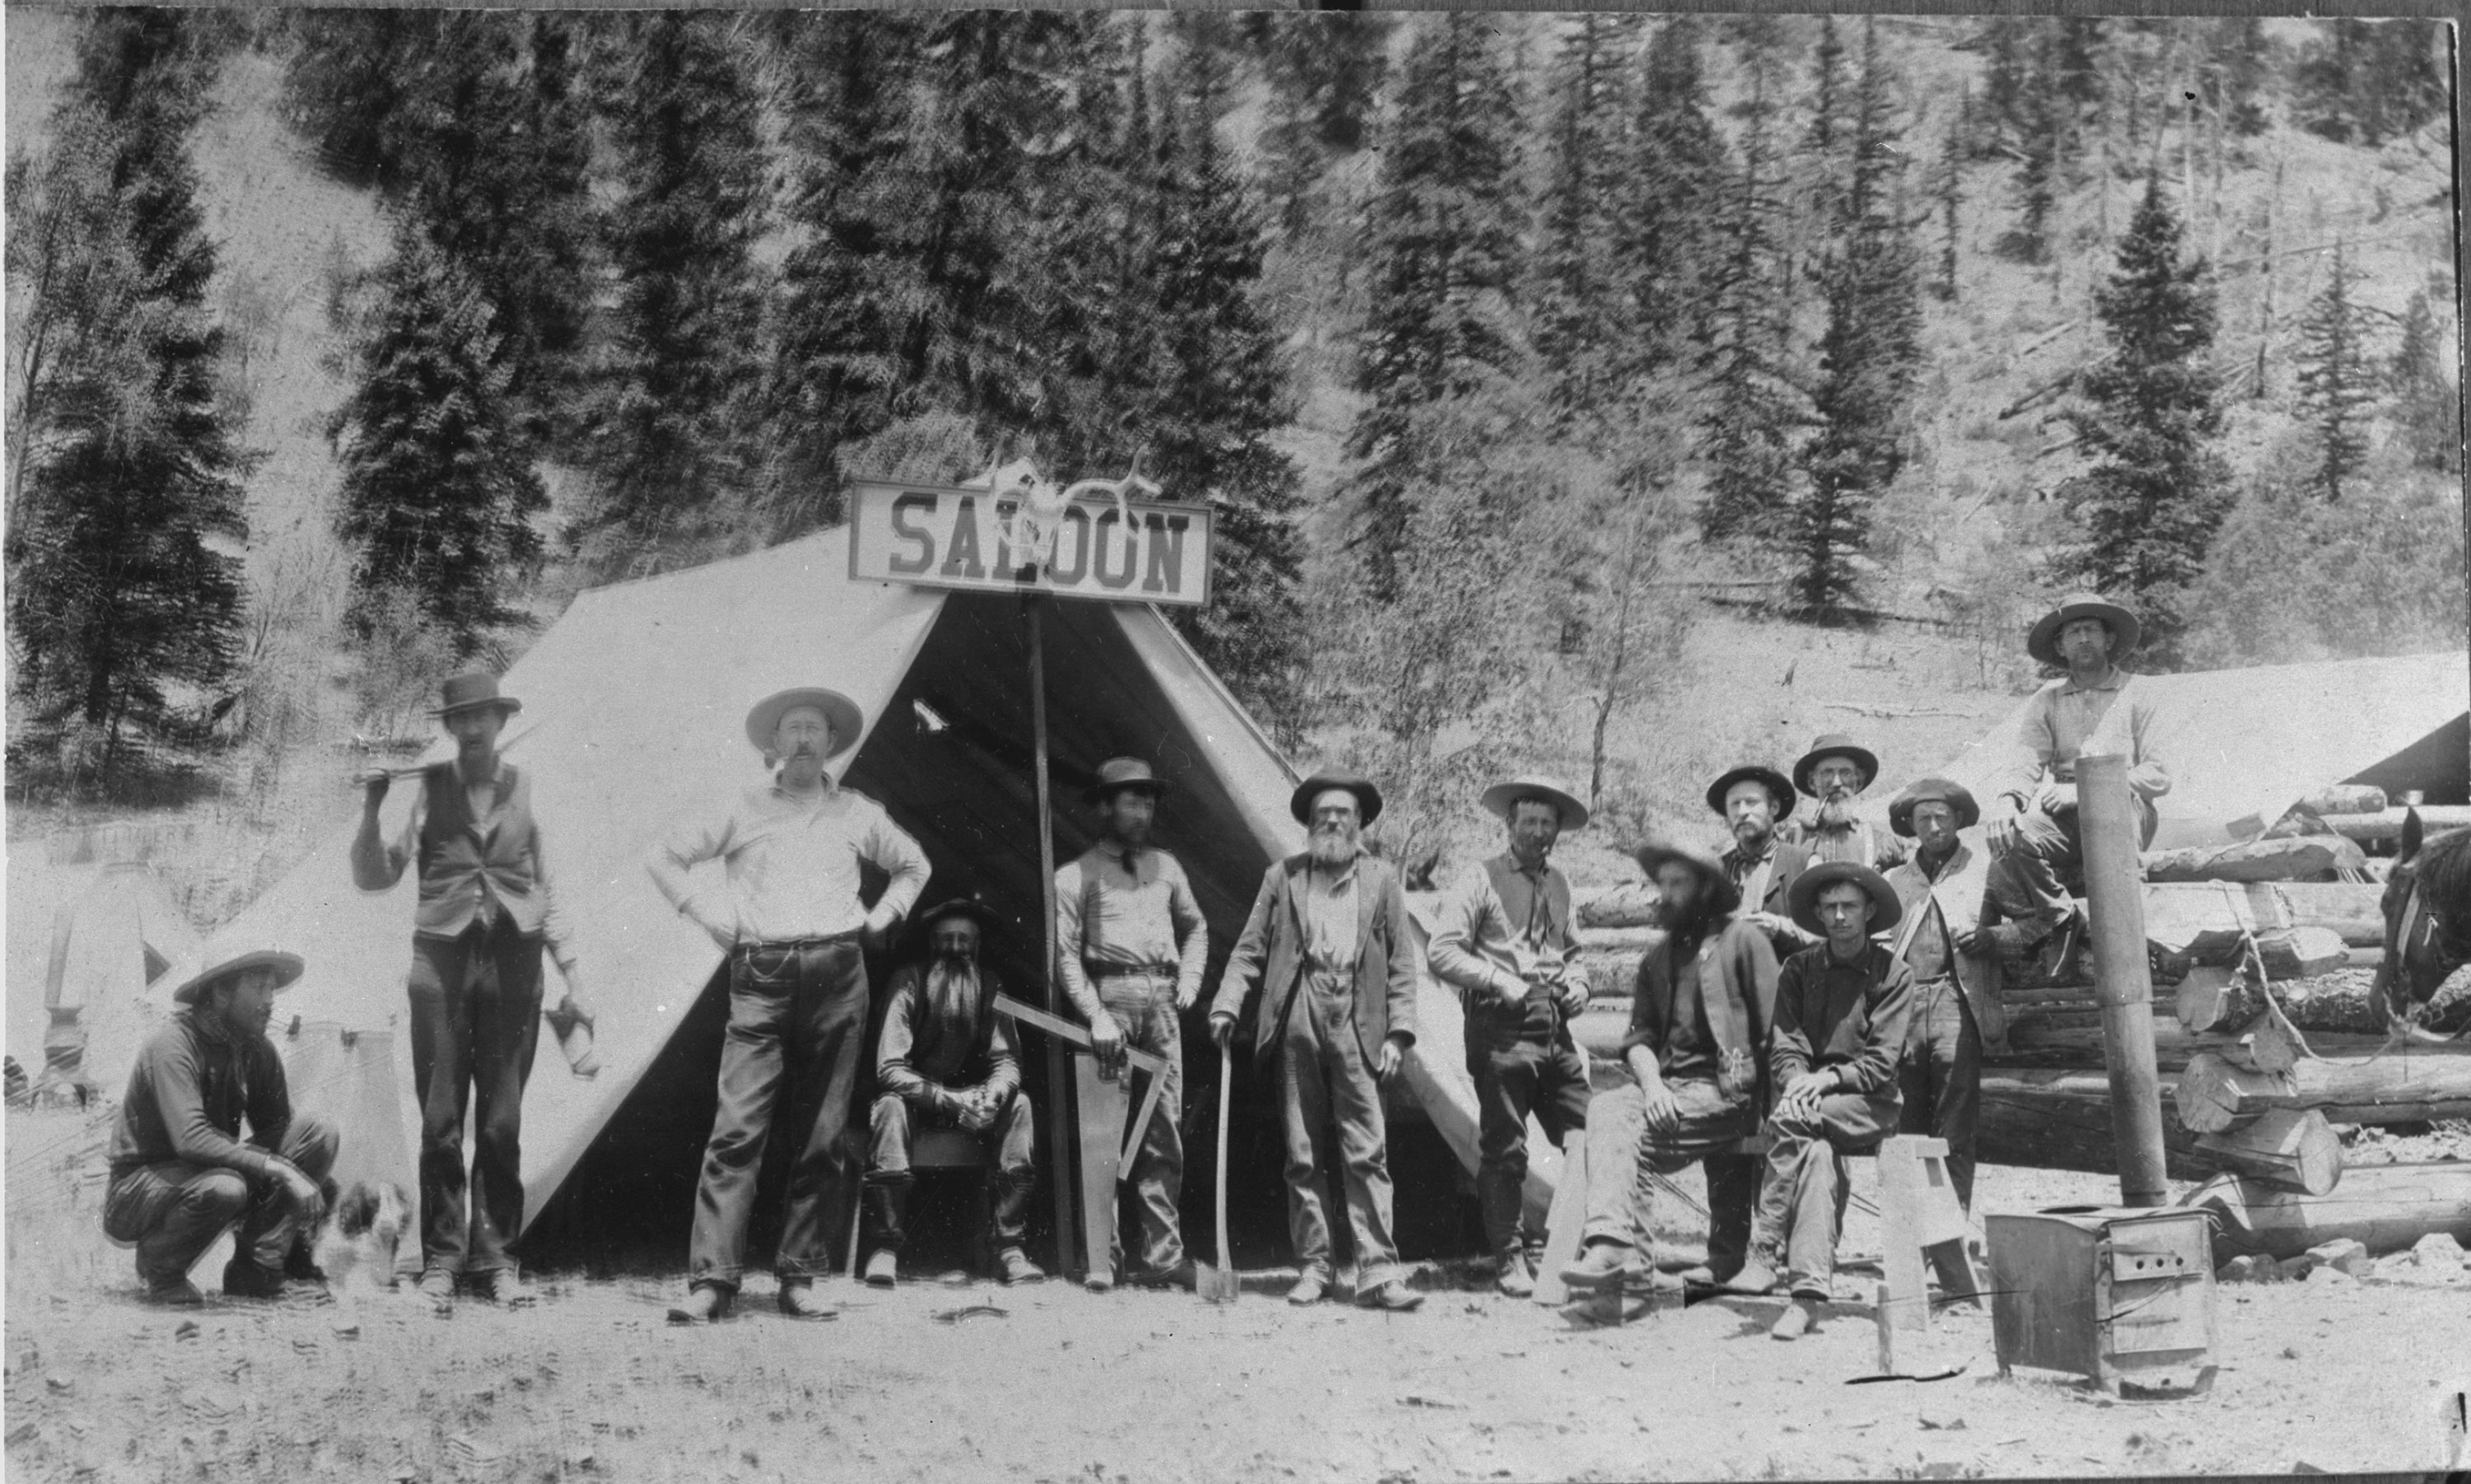 Historic photo of saloon in tent with miners